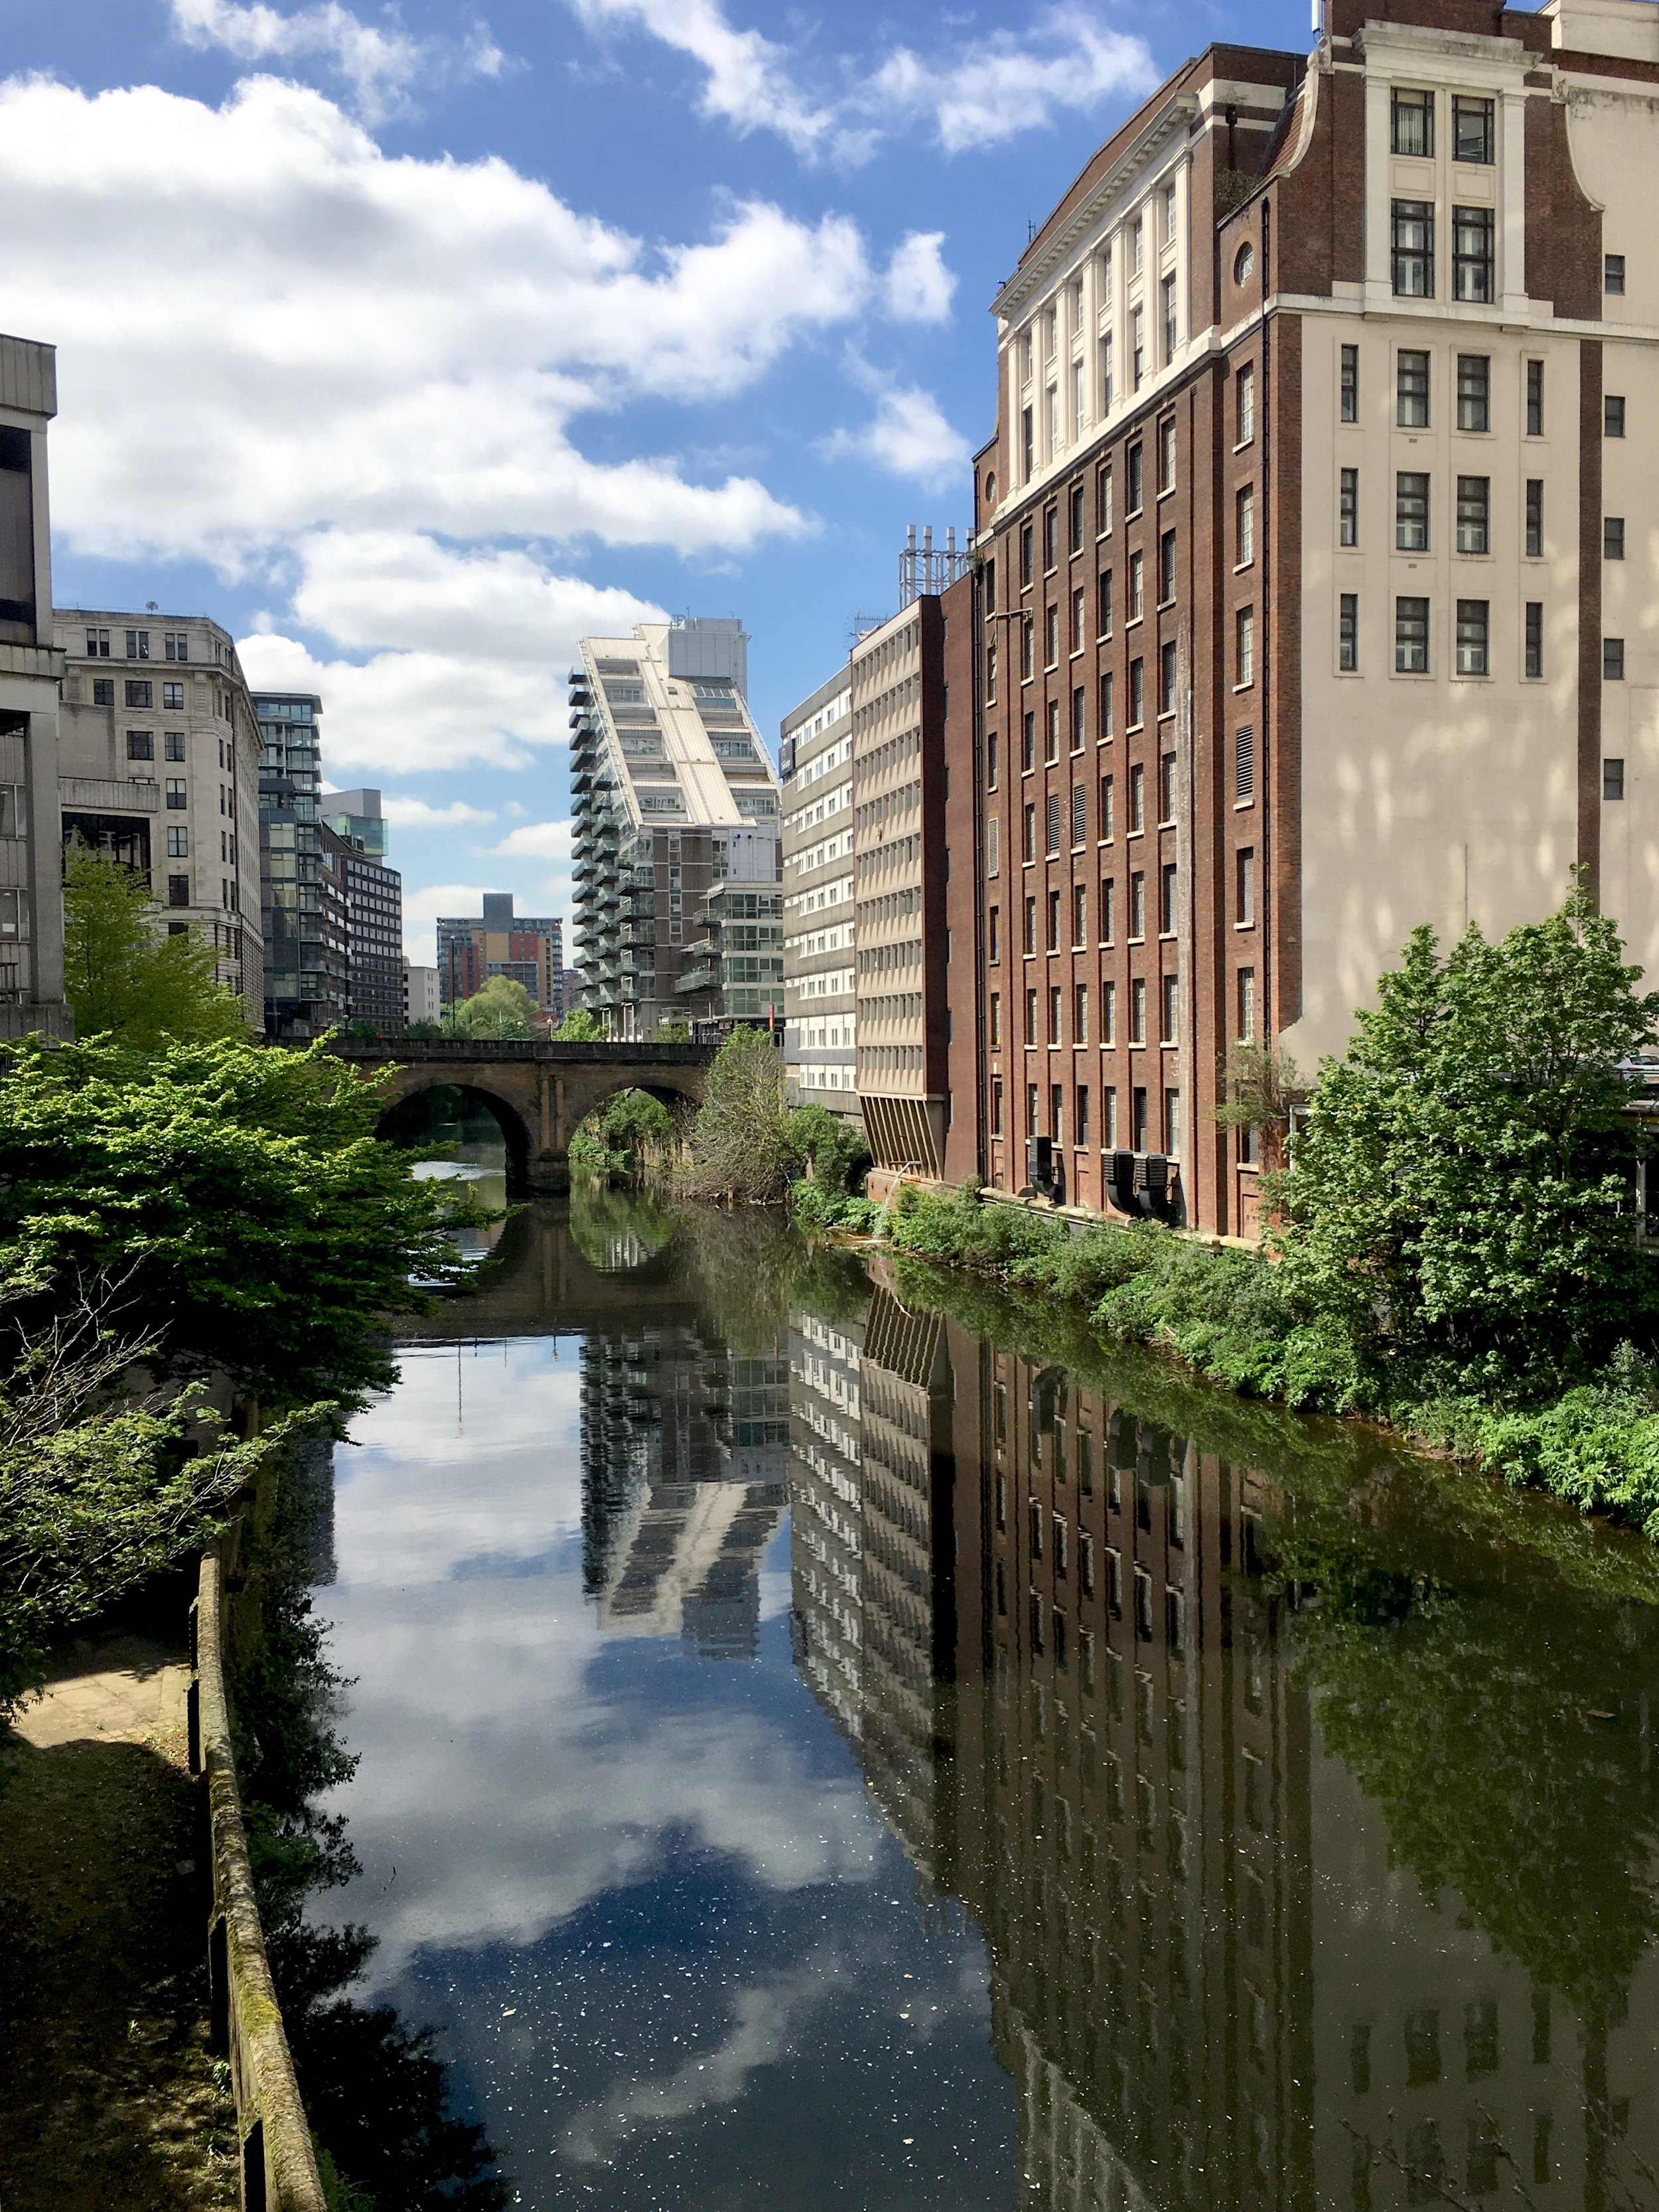 he River Irwell. Dividing Manchester from my home town of Salford